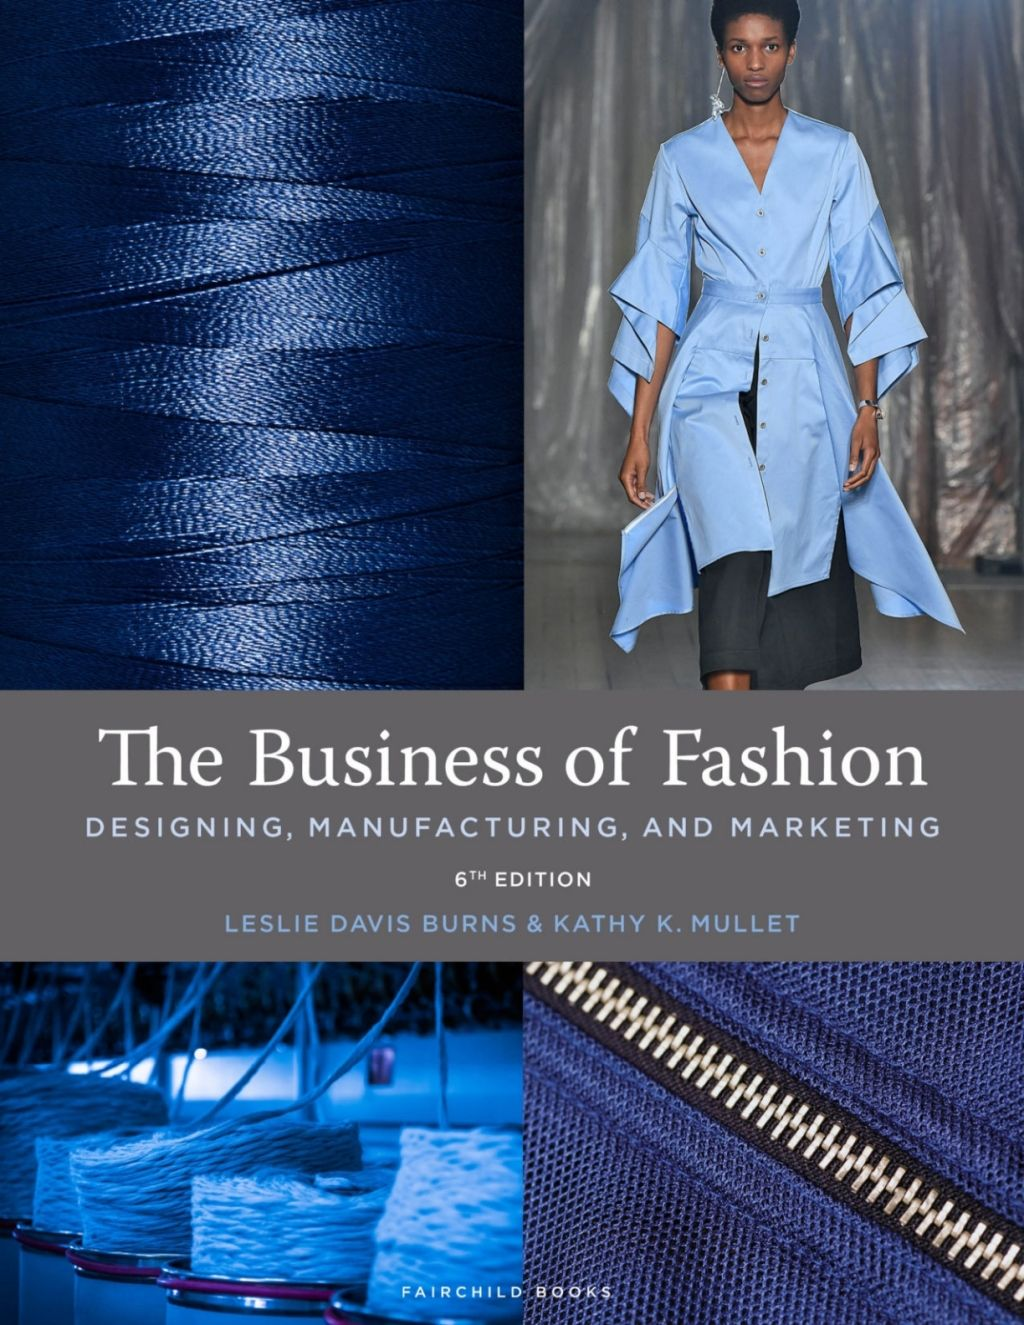 8 342 Mentions J Aime 49 Commentaires The Business Of Fashion Bof Sur Instagram As Virginie Viard Continues Her Baby Steps At The Creative Helm Of Chan